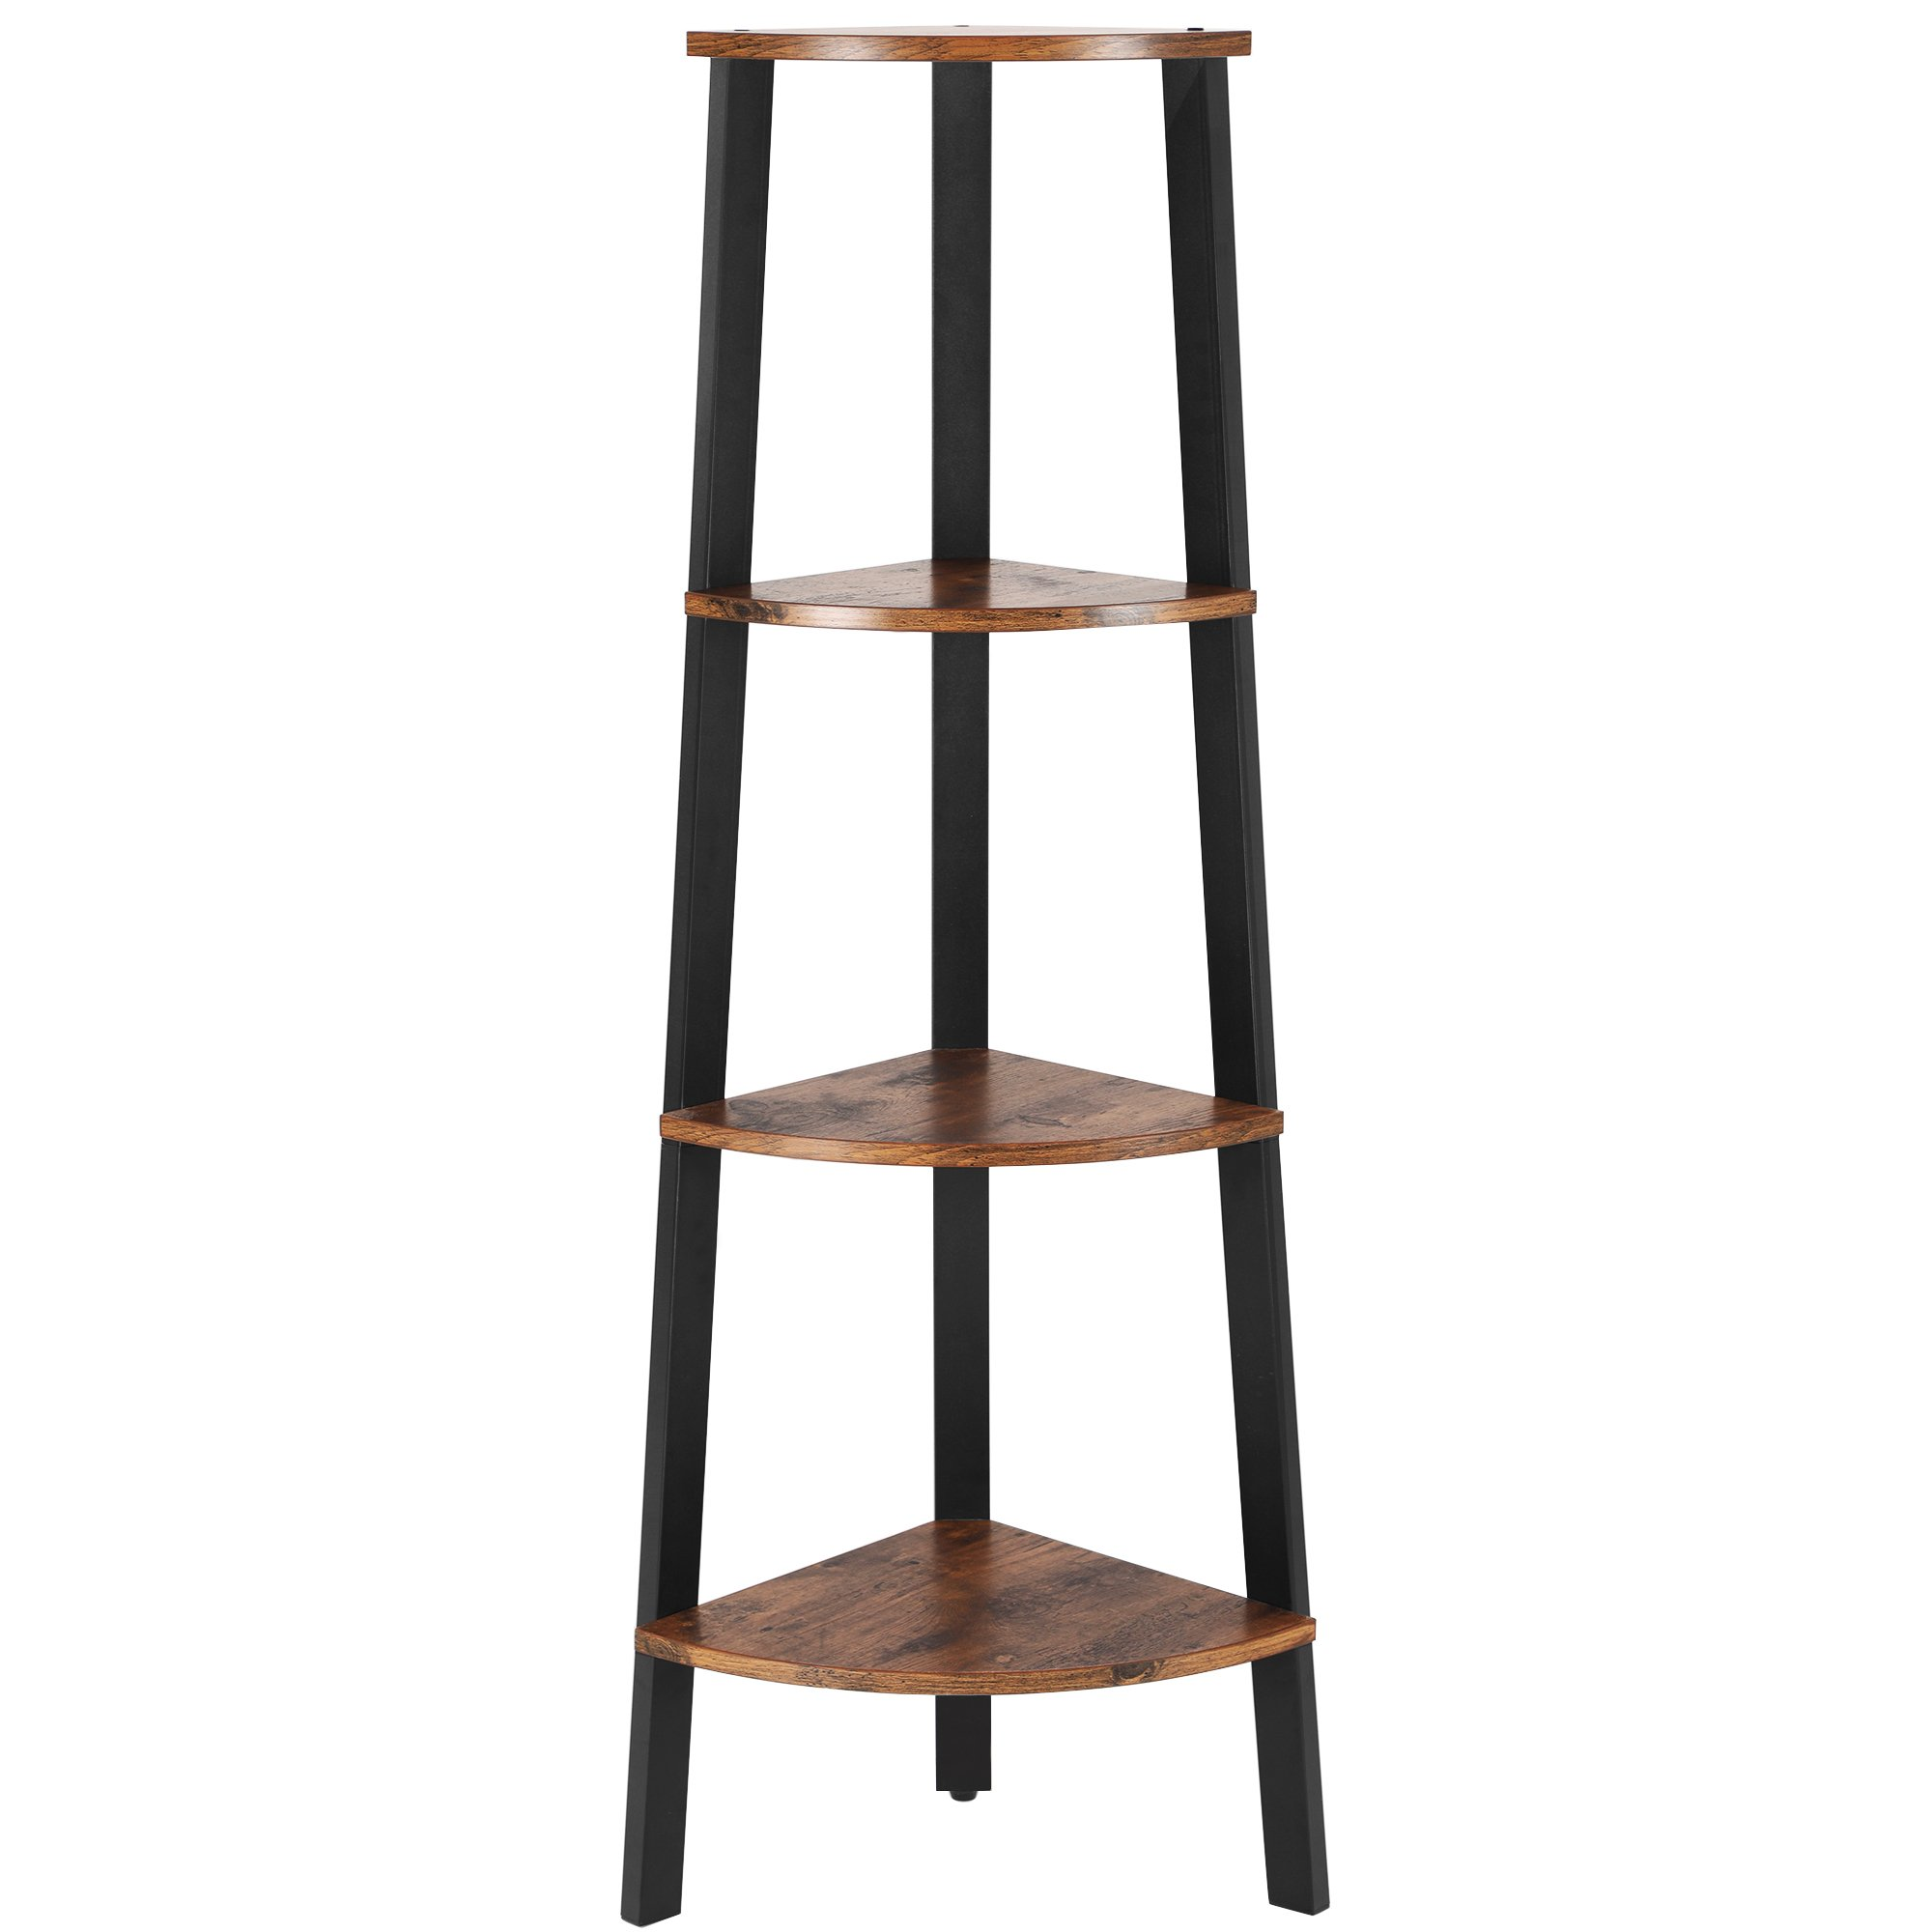 VASAGLE Industrial Corner Shelf, 4-Tier Bookcase, Storage Rack, Plant Stand for Home Office, Wood Look Accent Furniture with Metal Frame, Rustic Brown ULLS34X by VASAGLE